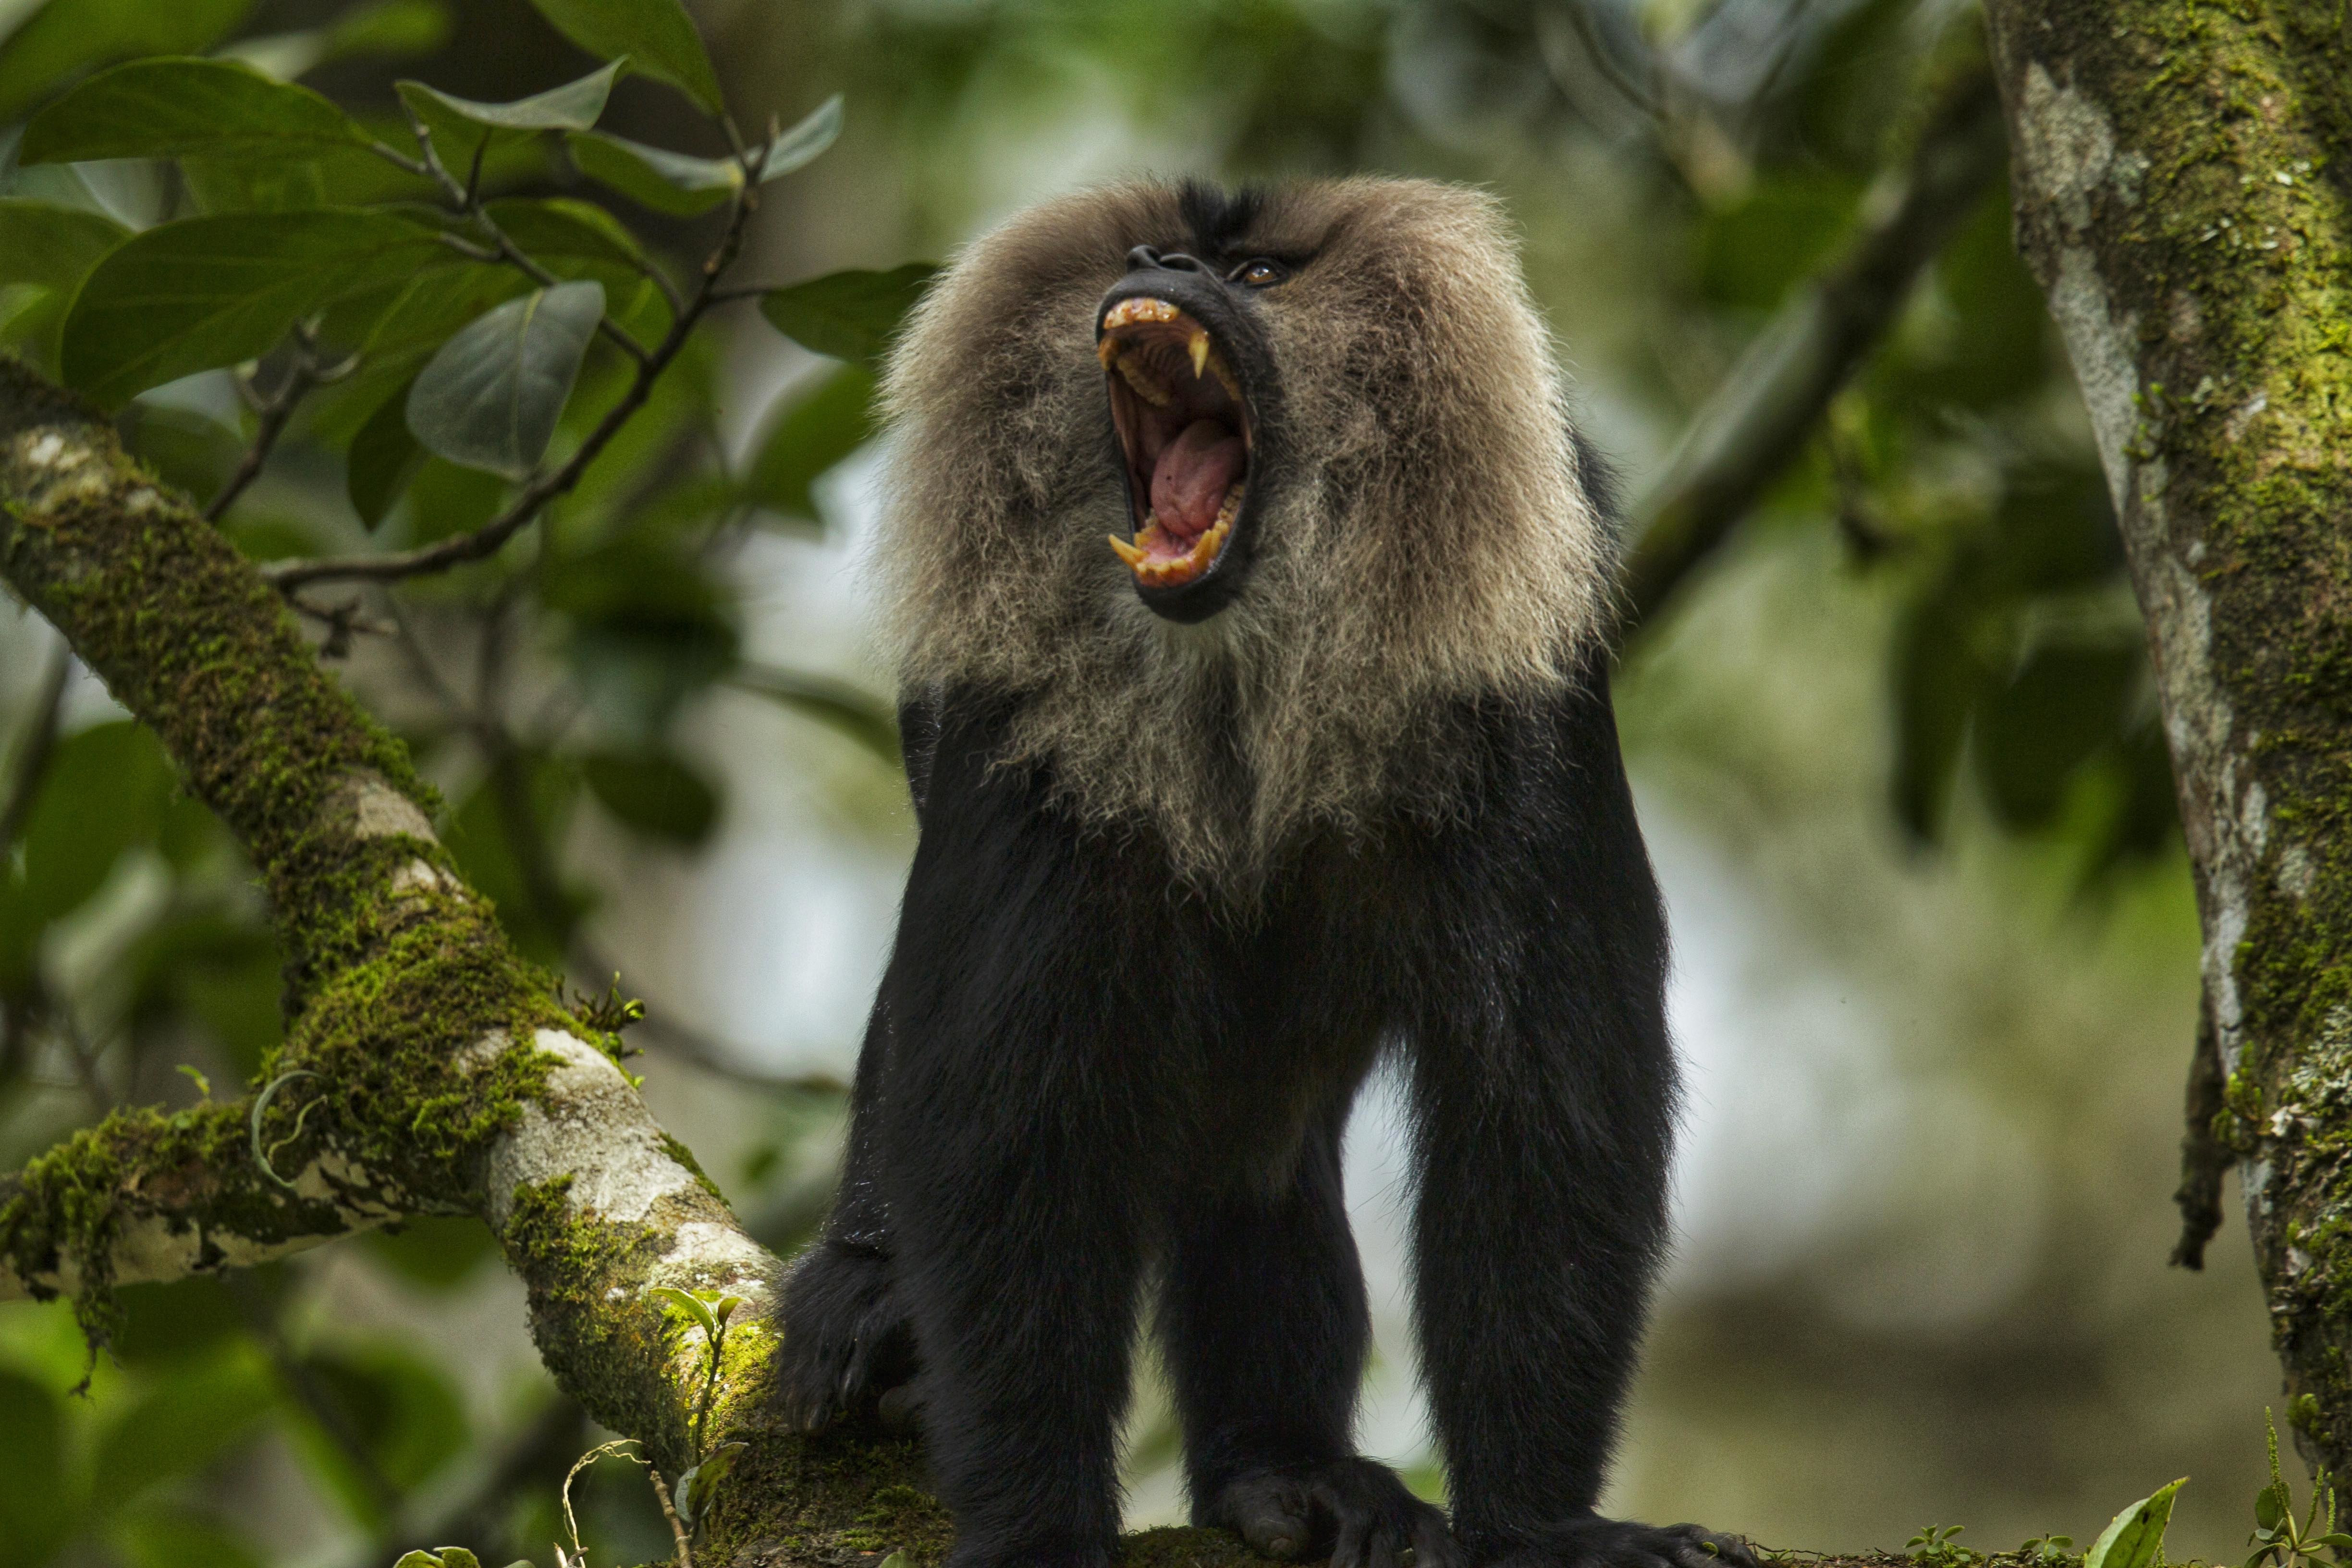 In the dense canopy in the Western Ghats, lion-tailed macaques use vocal sounds to communicate with each other. Scientists have noticed around 17 situation-specific sound patterns that the primates employ for various purposes. Photo: Keerthana Balaji